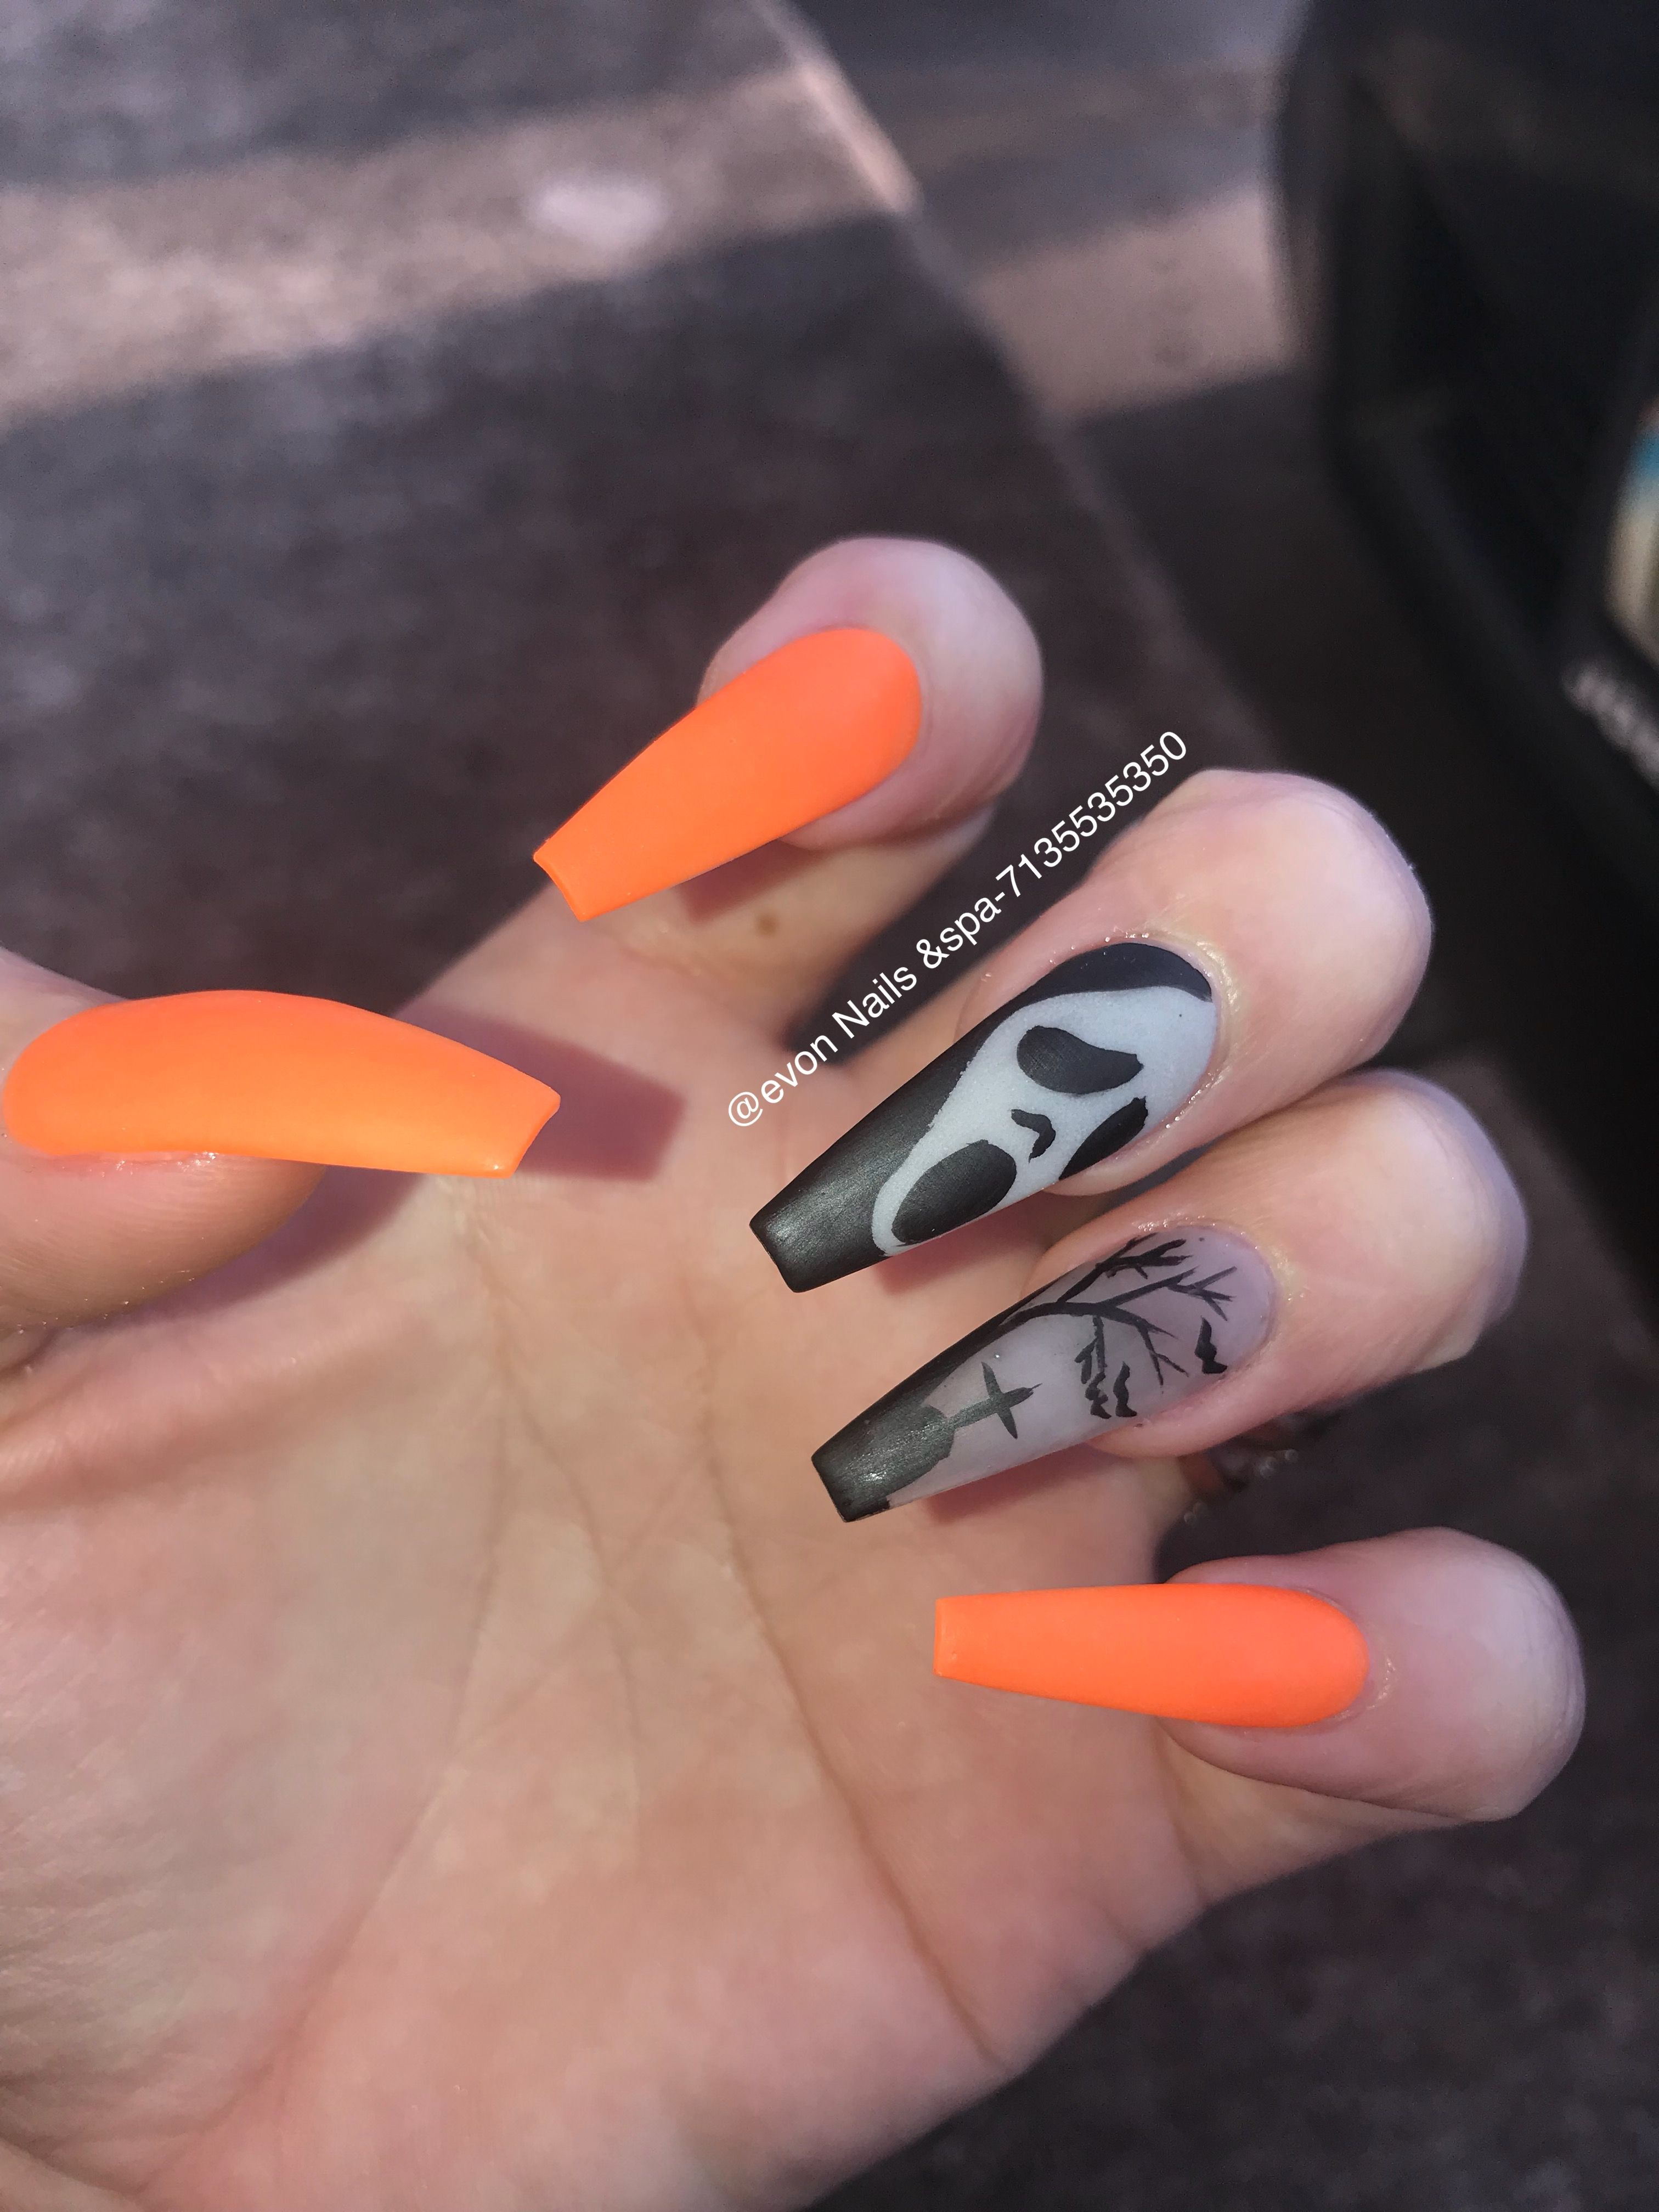 Pin by Megan Tanner on Nails in 2019